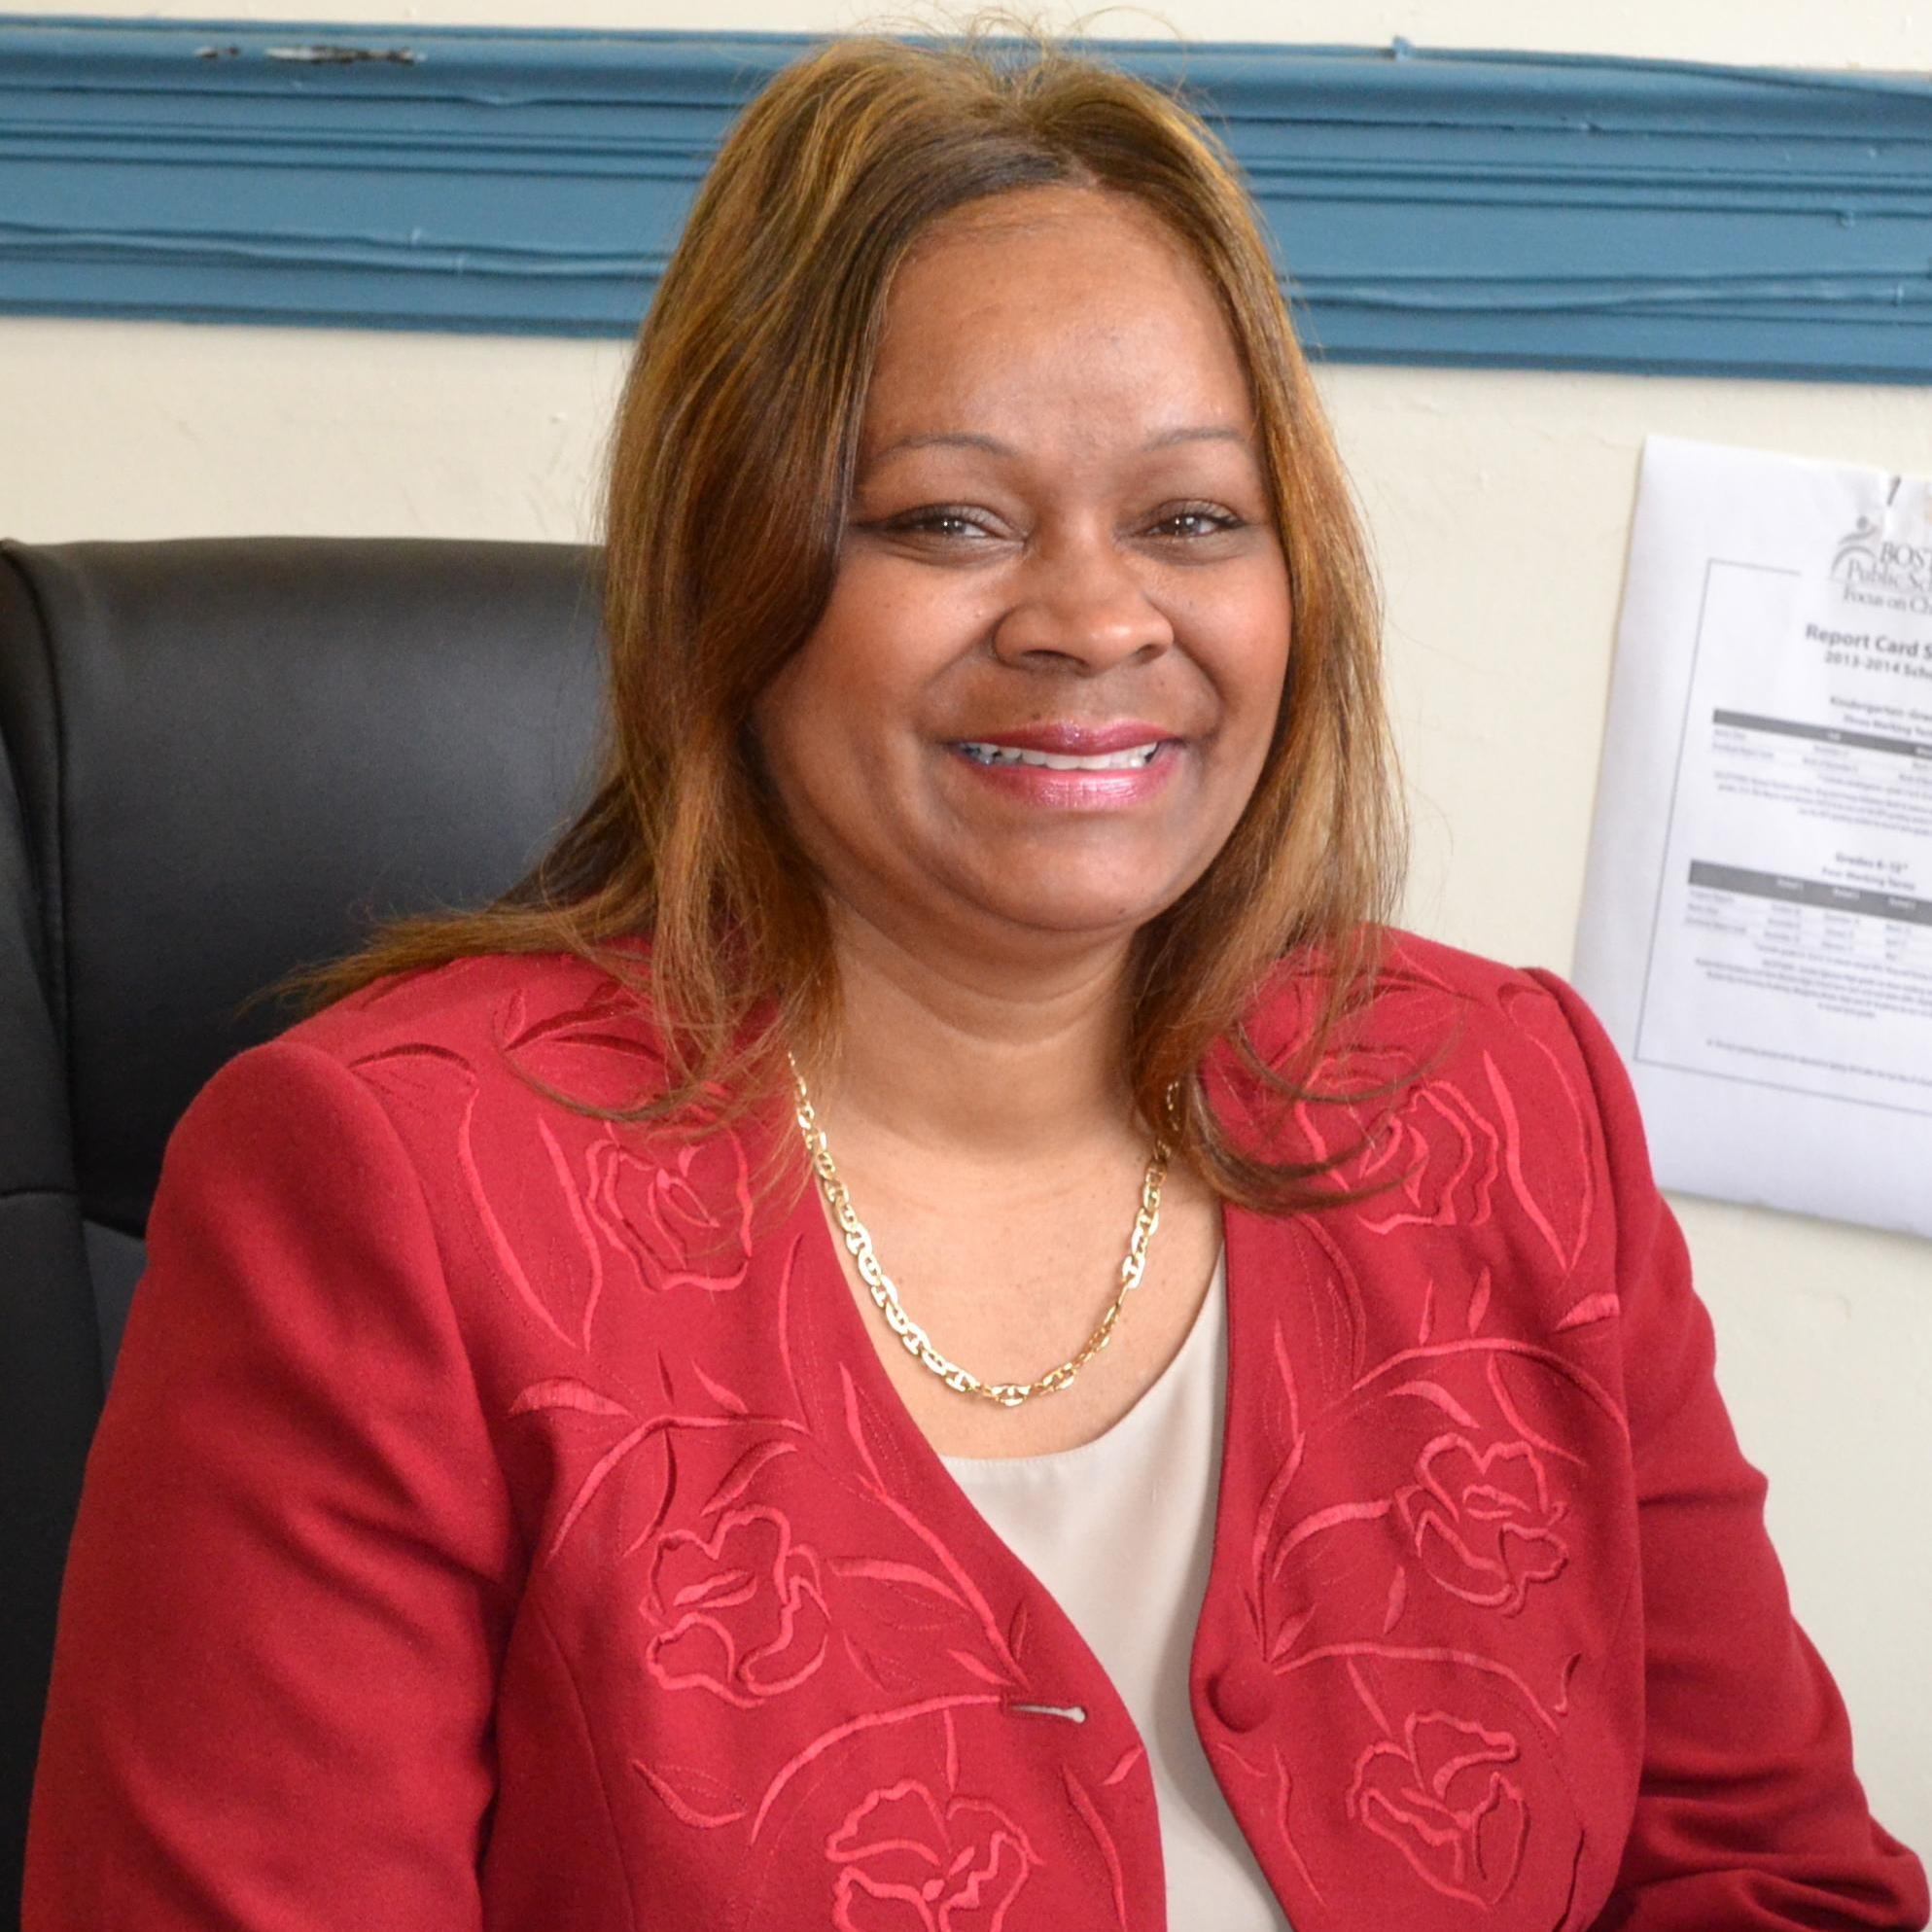 Carrie King-Woodson's Profile Photo